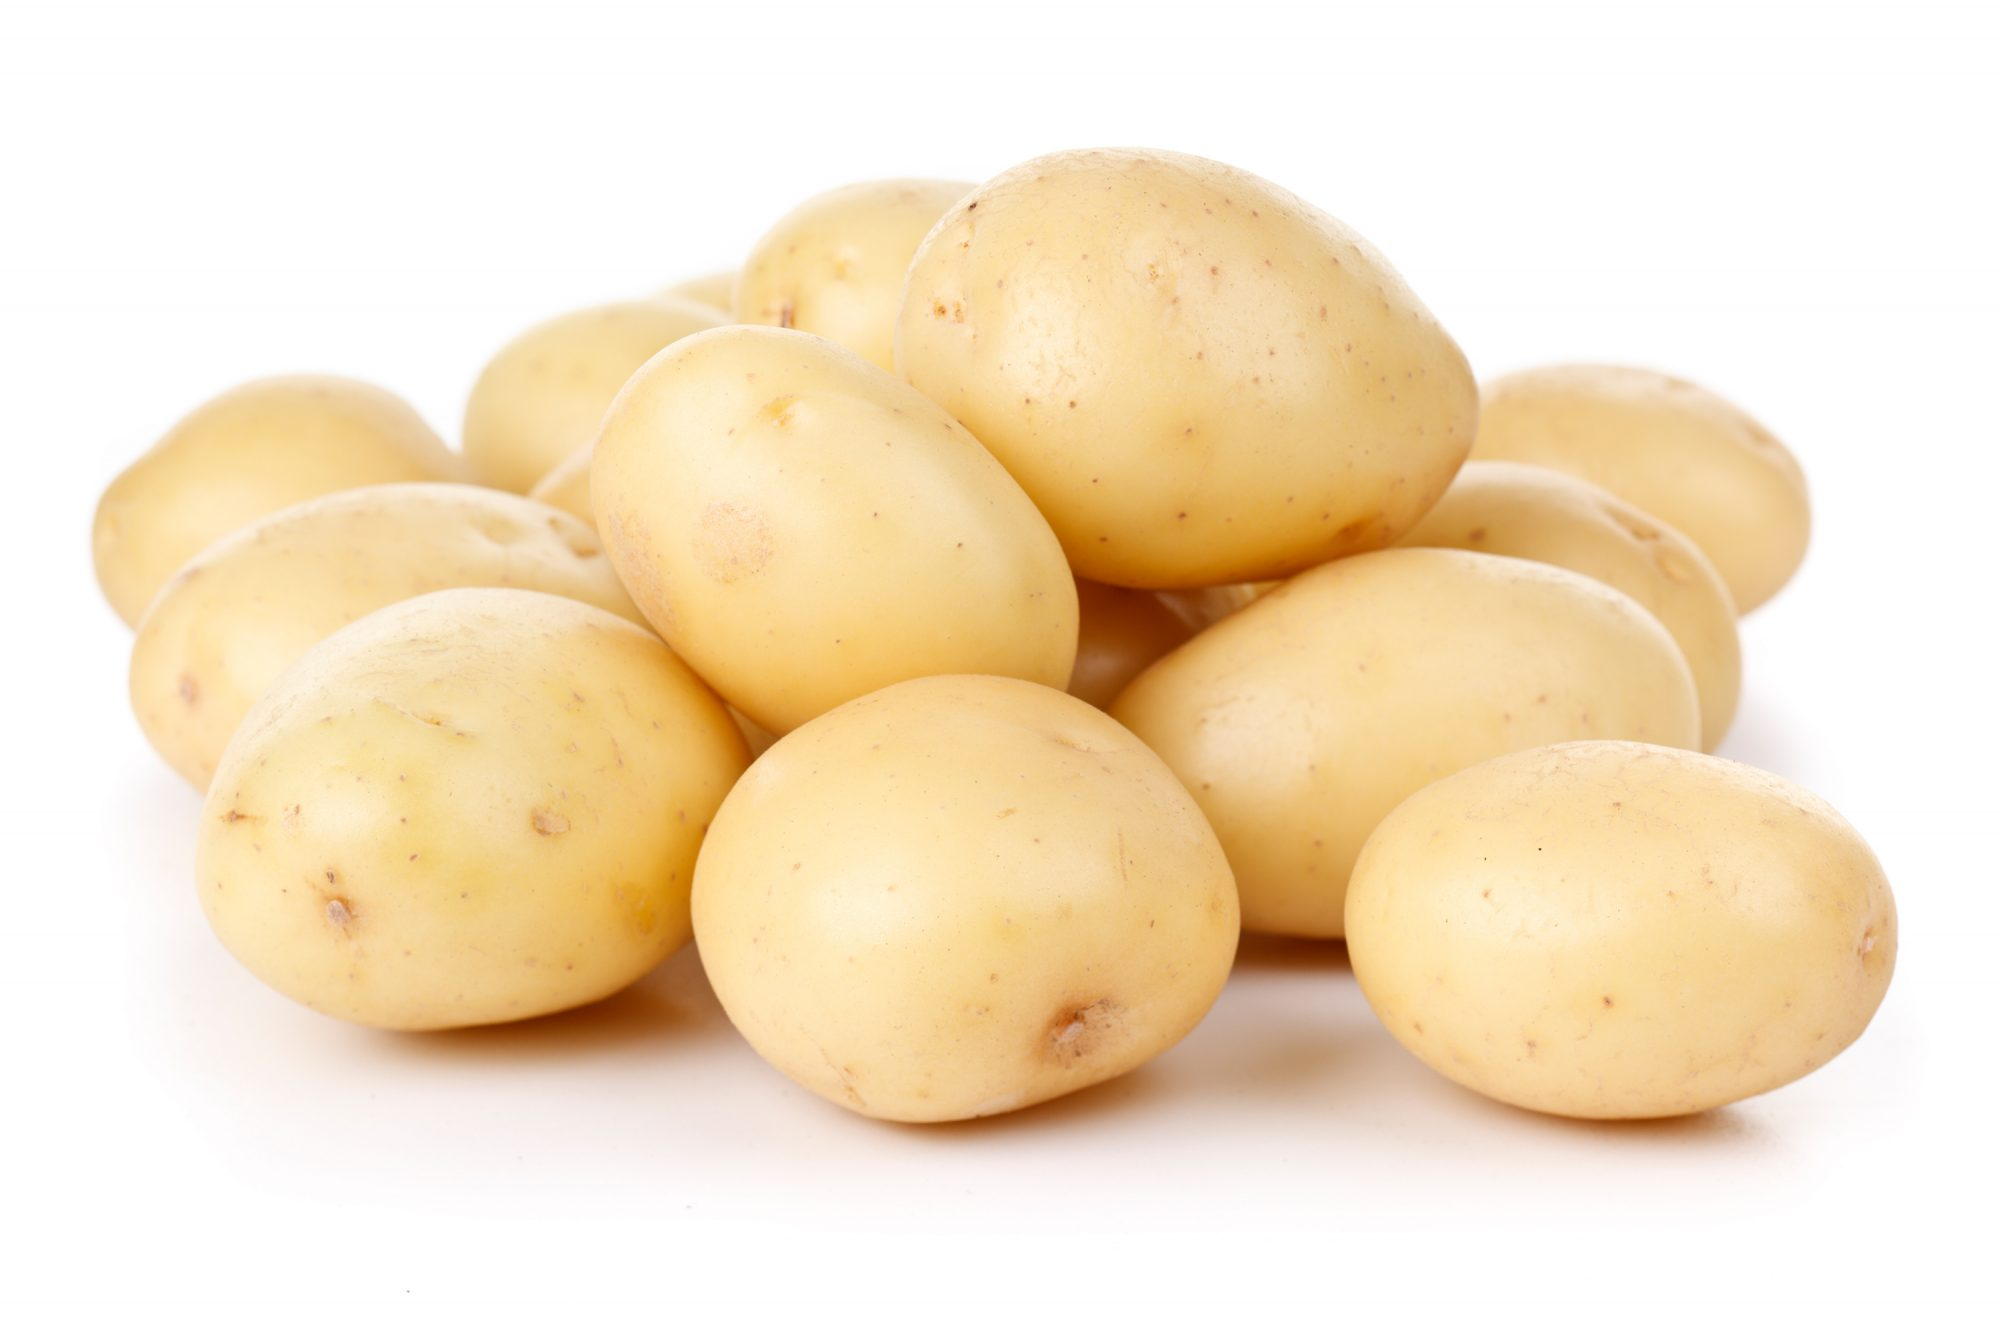 Close up of white potatoes